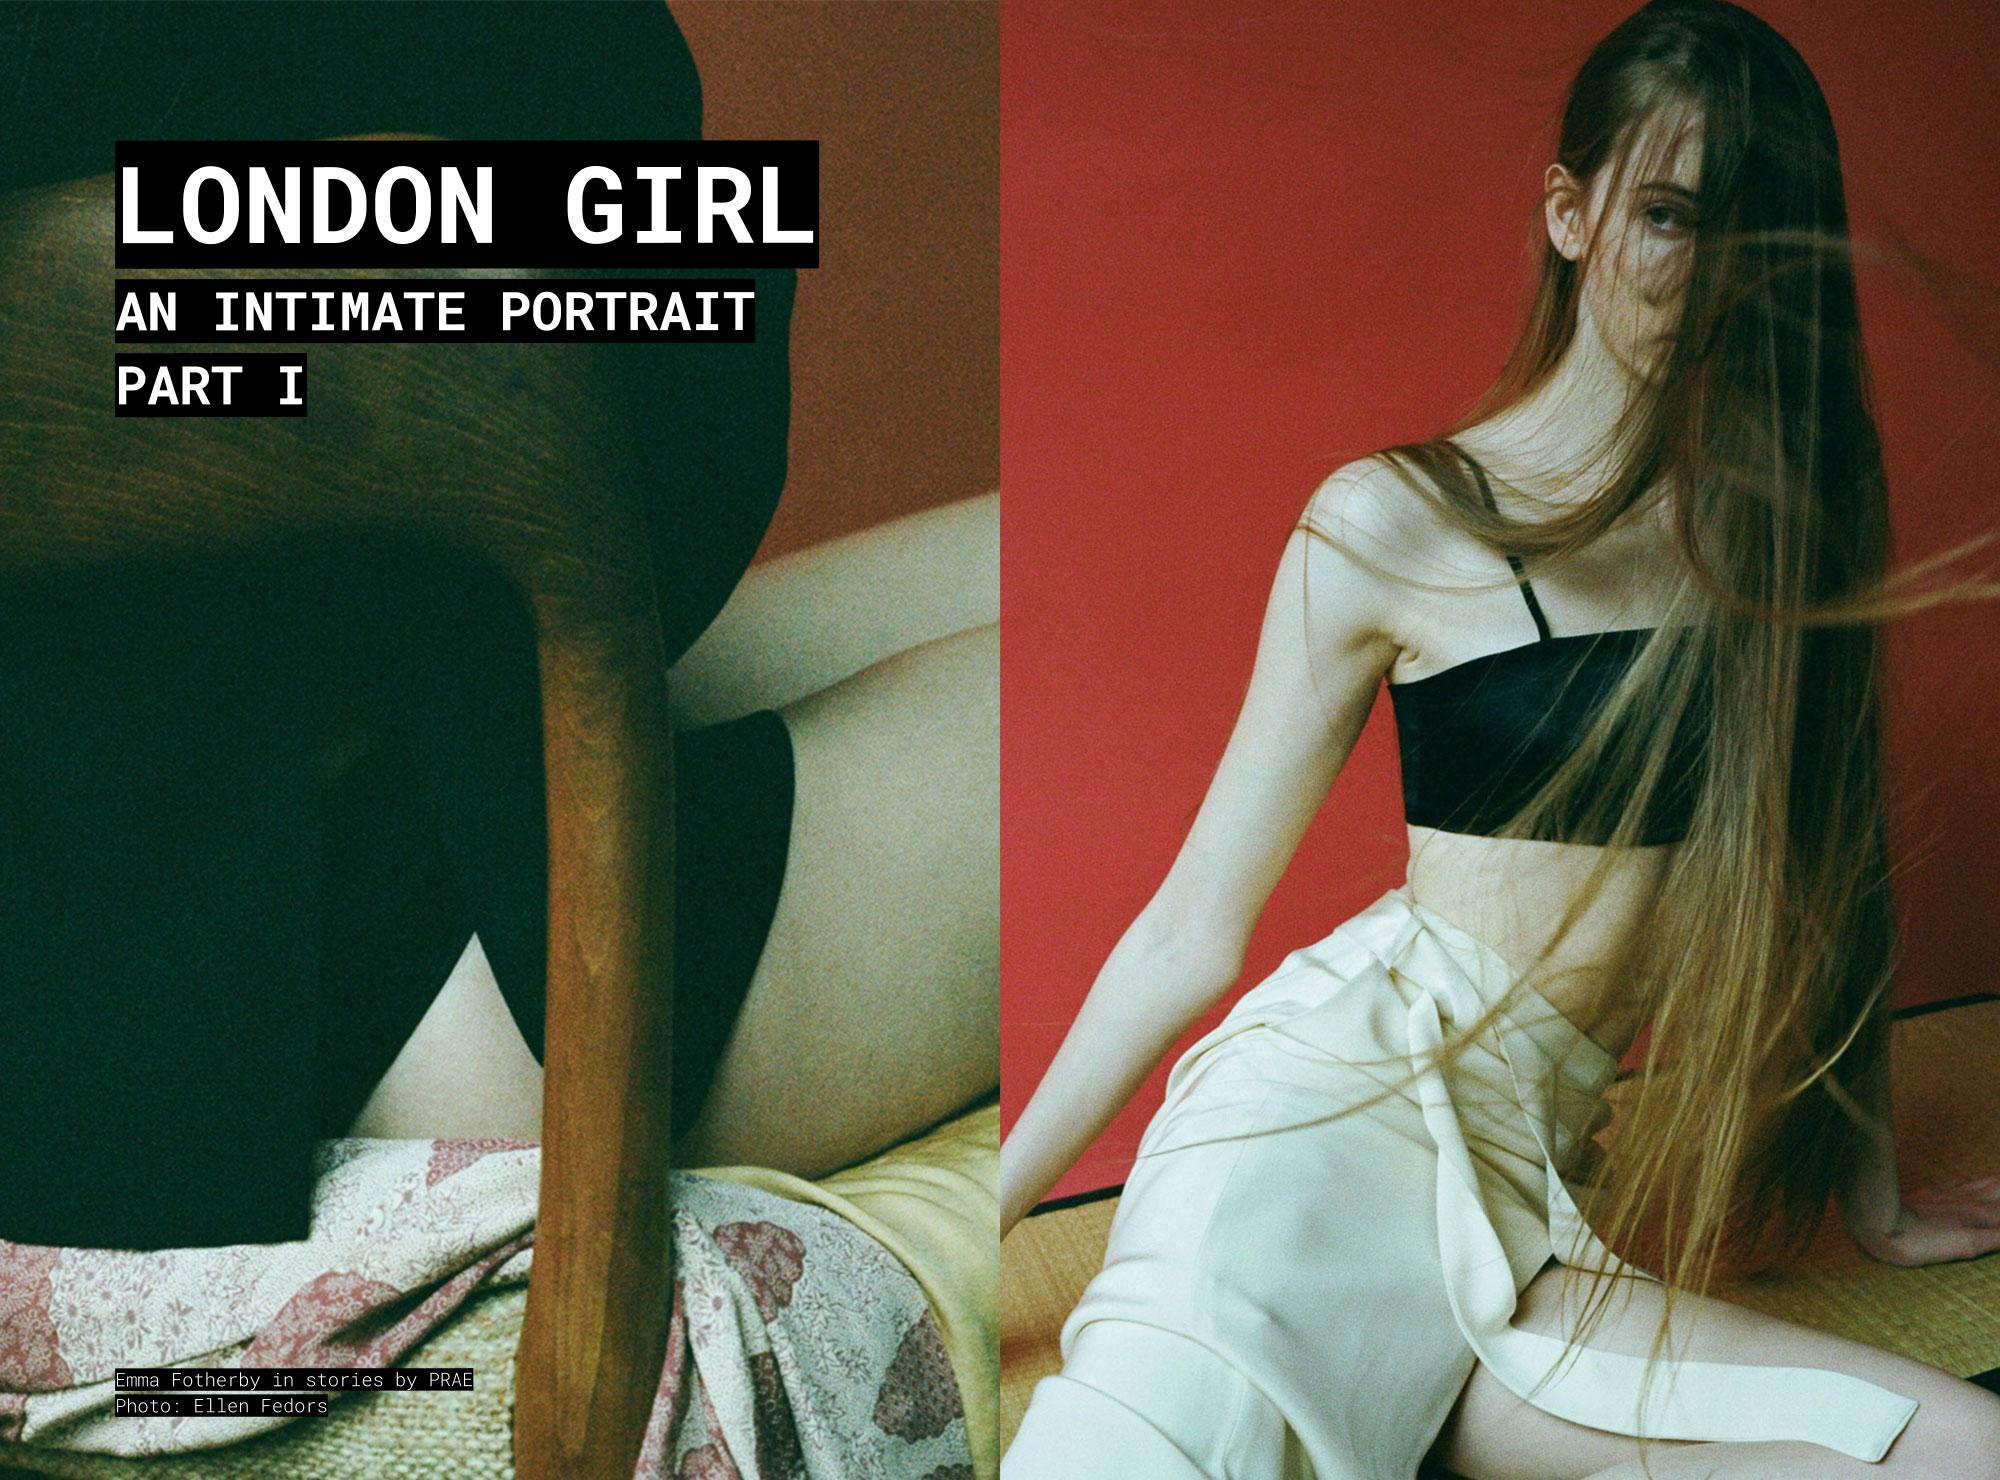 PRAE NYC STORIES: London Girl Part 1, Emma Fotherby by Ellen Fedors